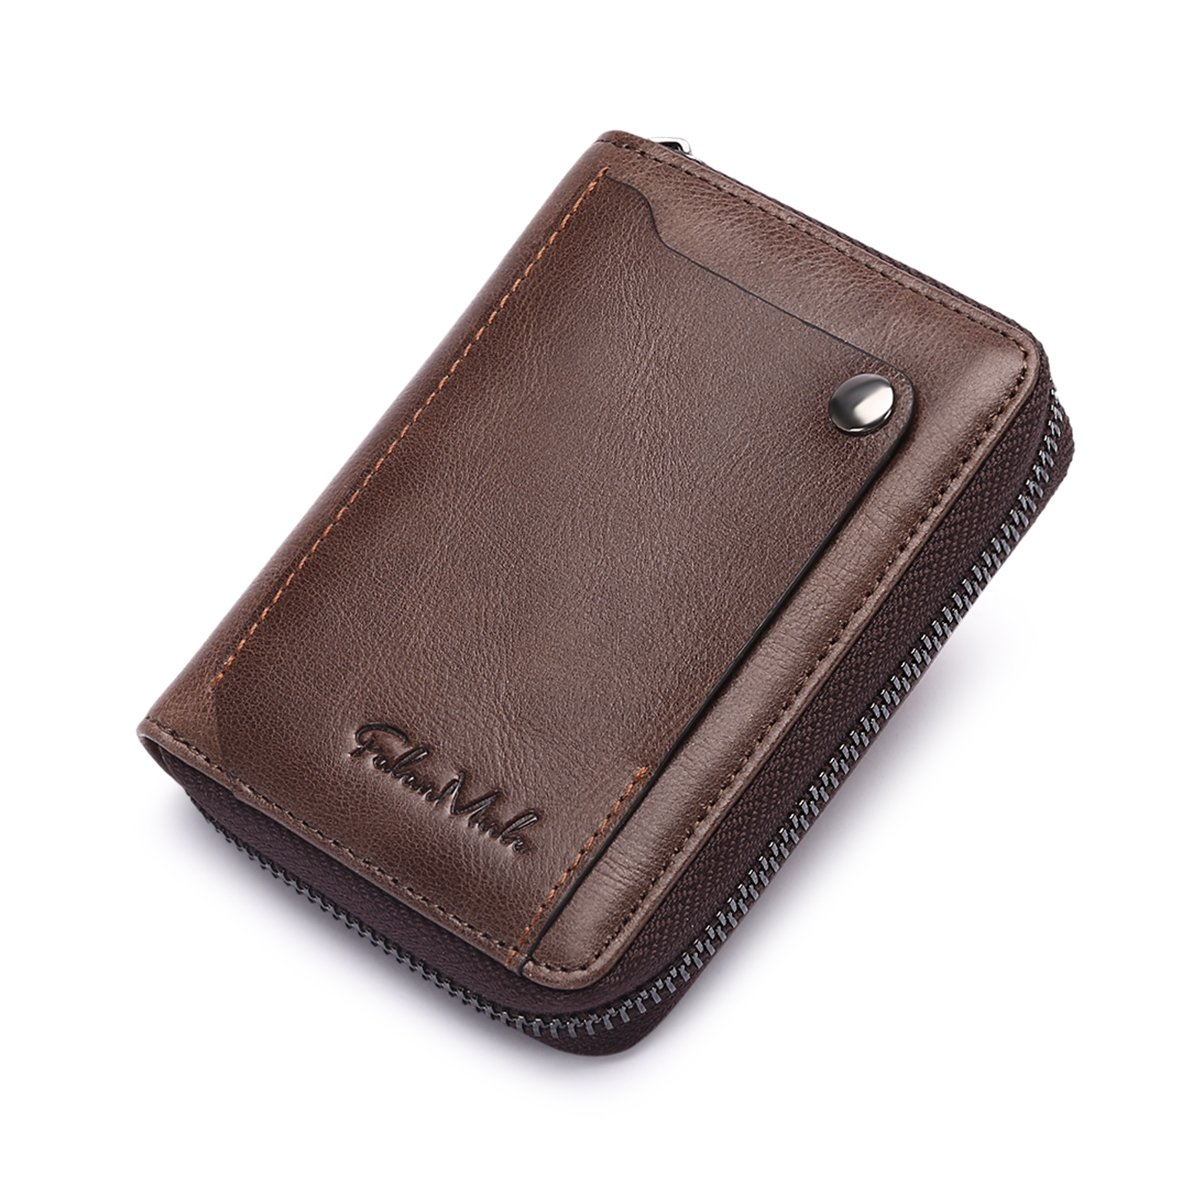 Slim Bifold RFID Blocking Men Wallet Leather Front Pocket Compact Design Zipper Closure Minimalist by Falan Mule (Image #1)